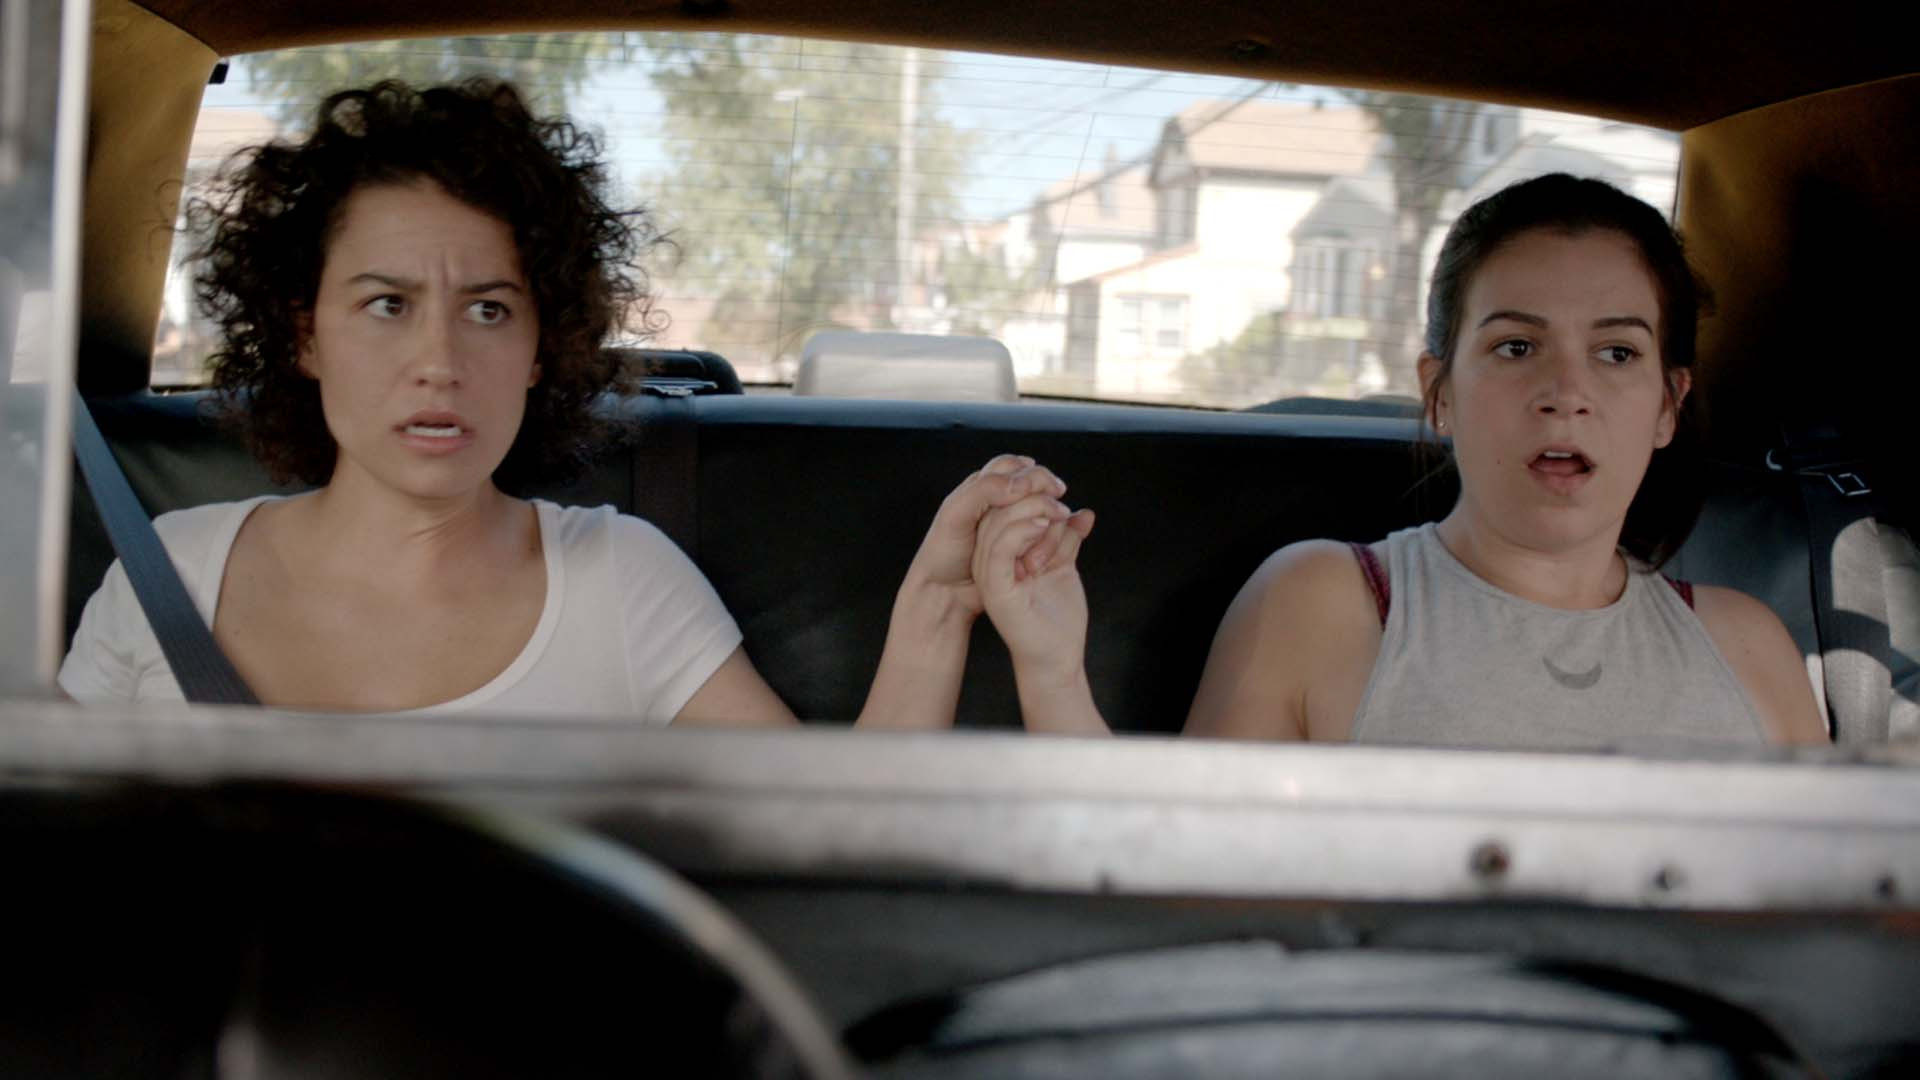 BROAD CITY - NYC'S NOT DONE WITH ABBI AND ILANA YET